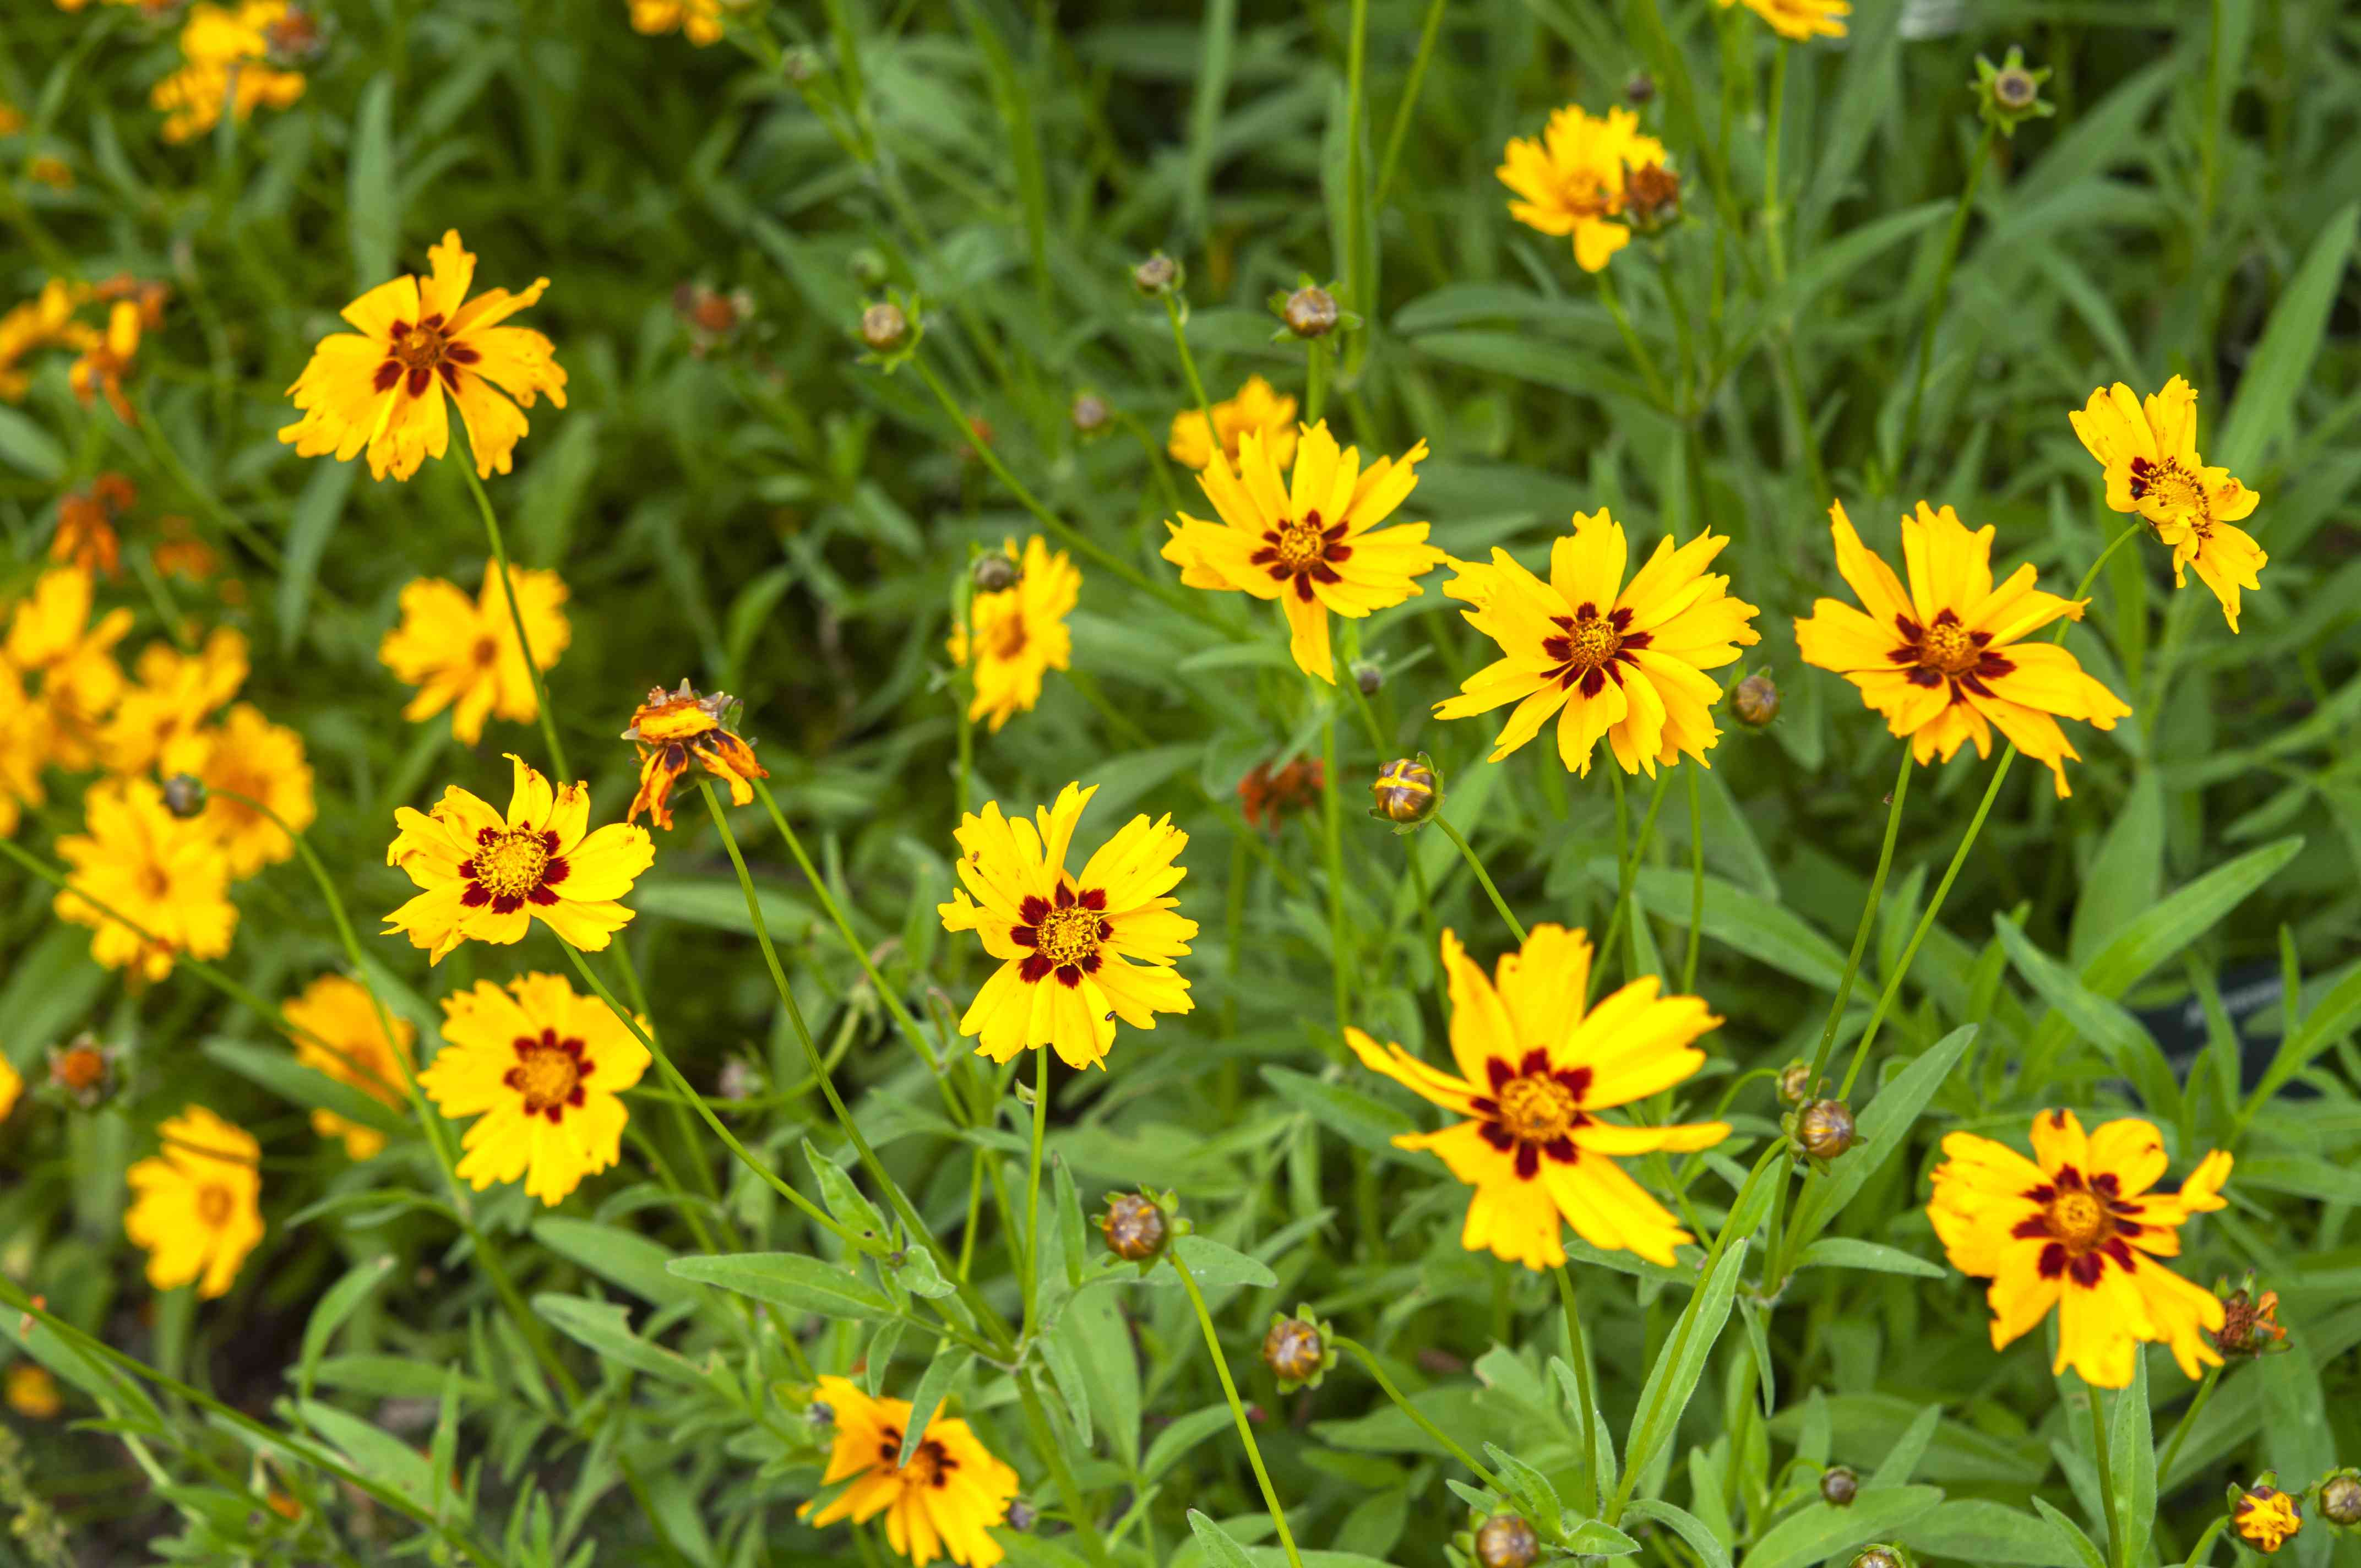 Heliot coreopsis flowers with yellow petals with red centers from above